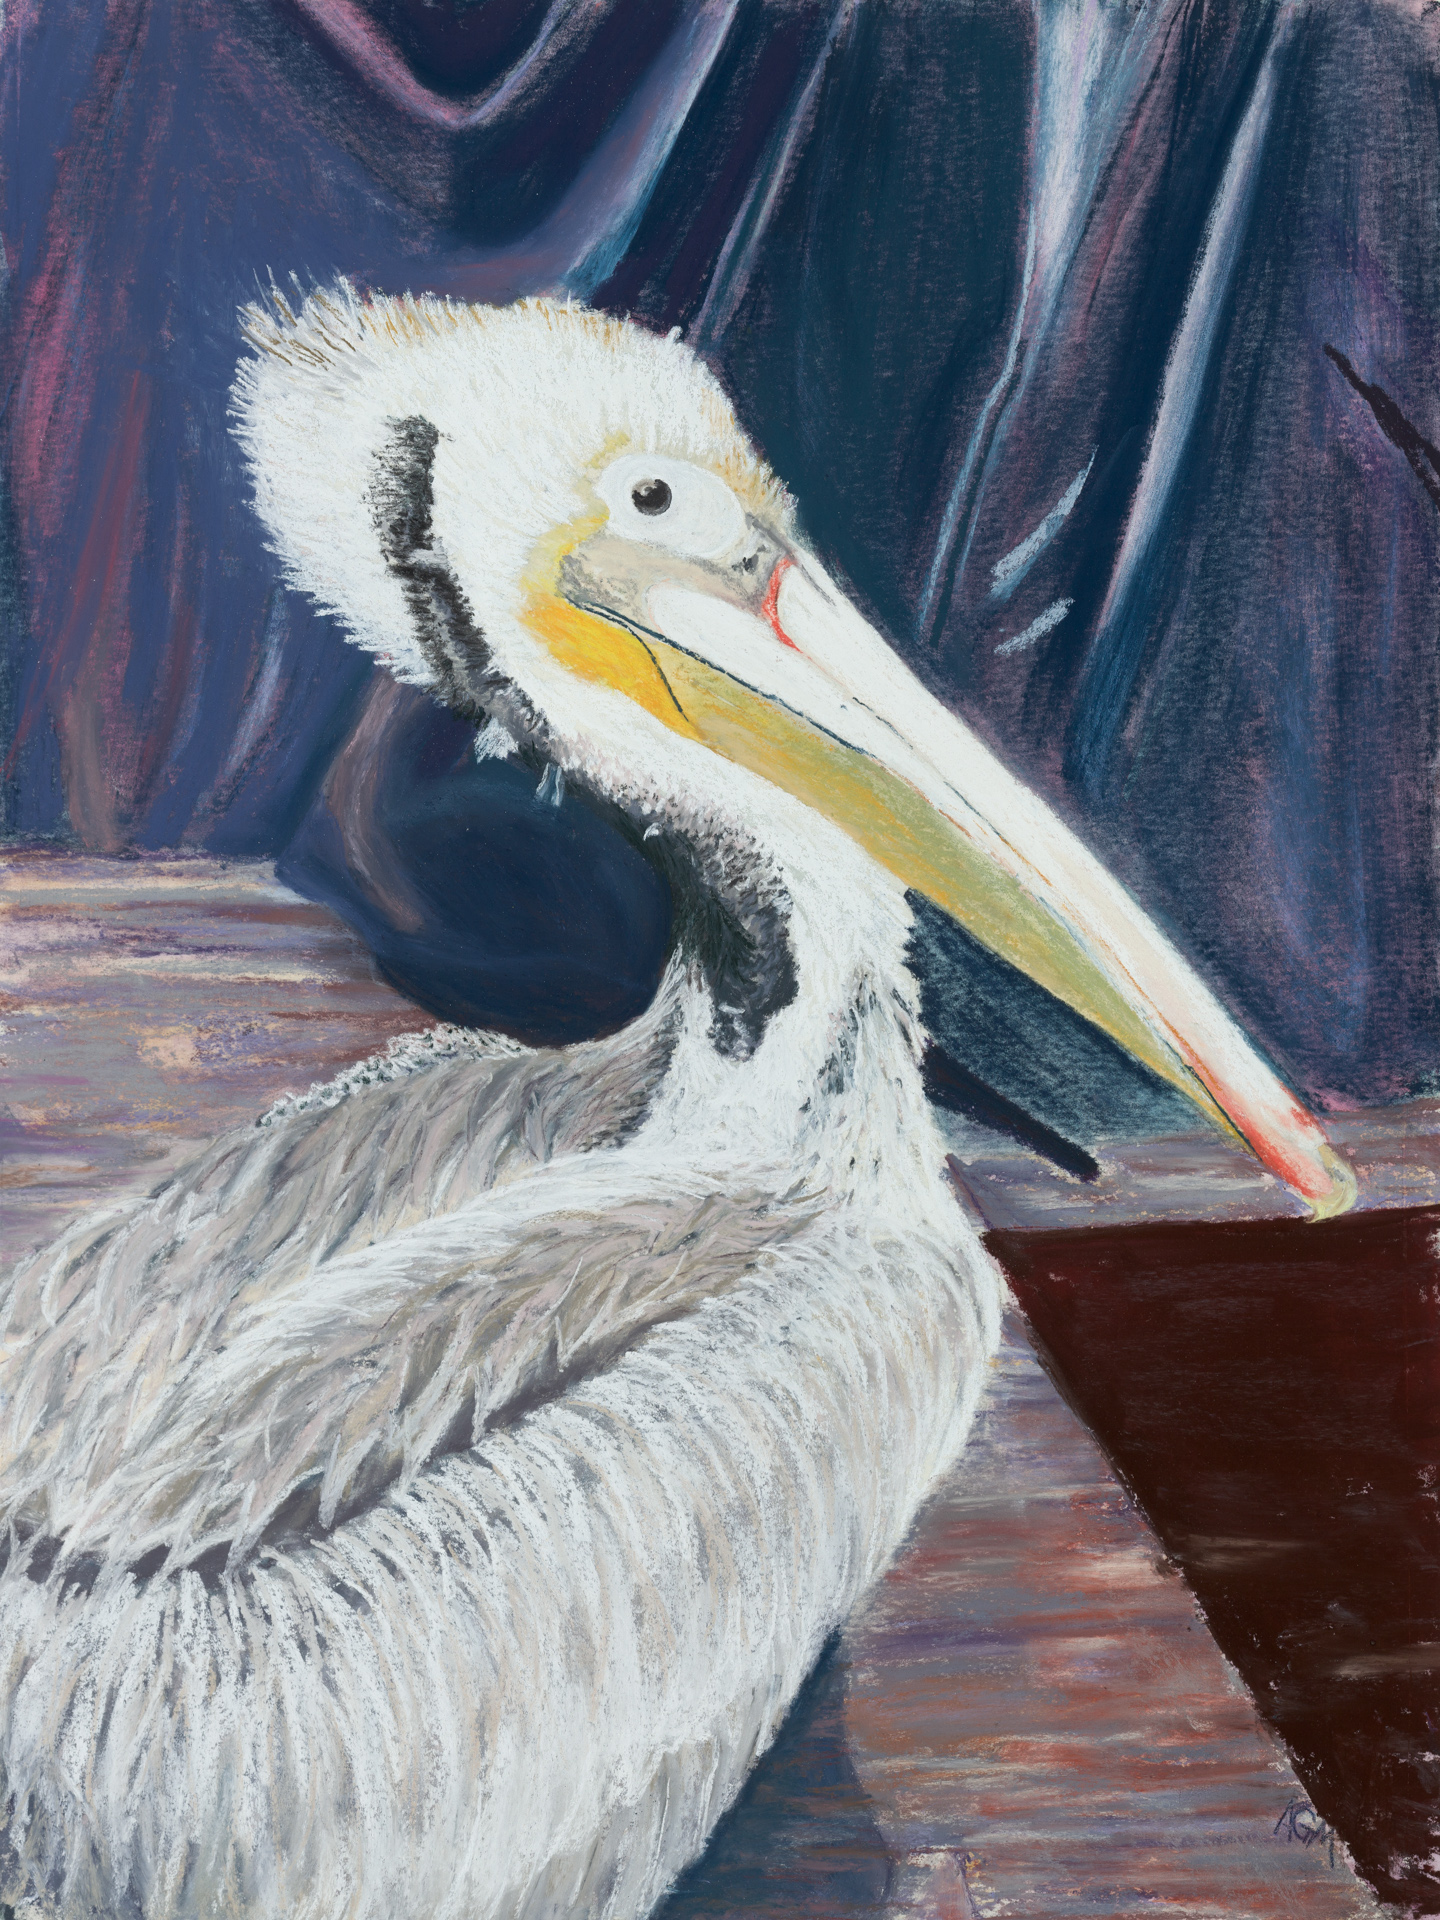 Ode to The Pelicans 08 - A11